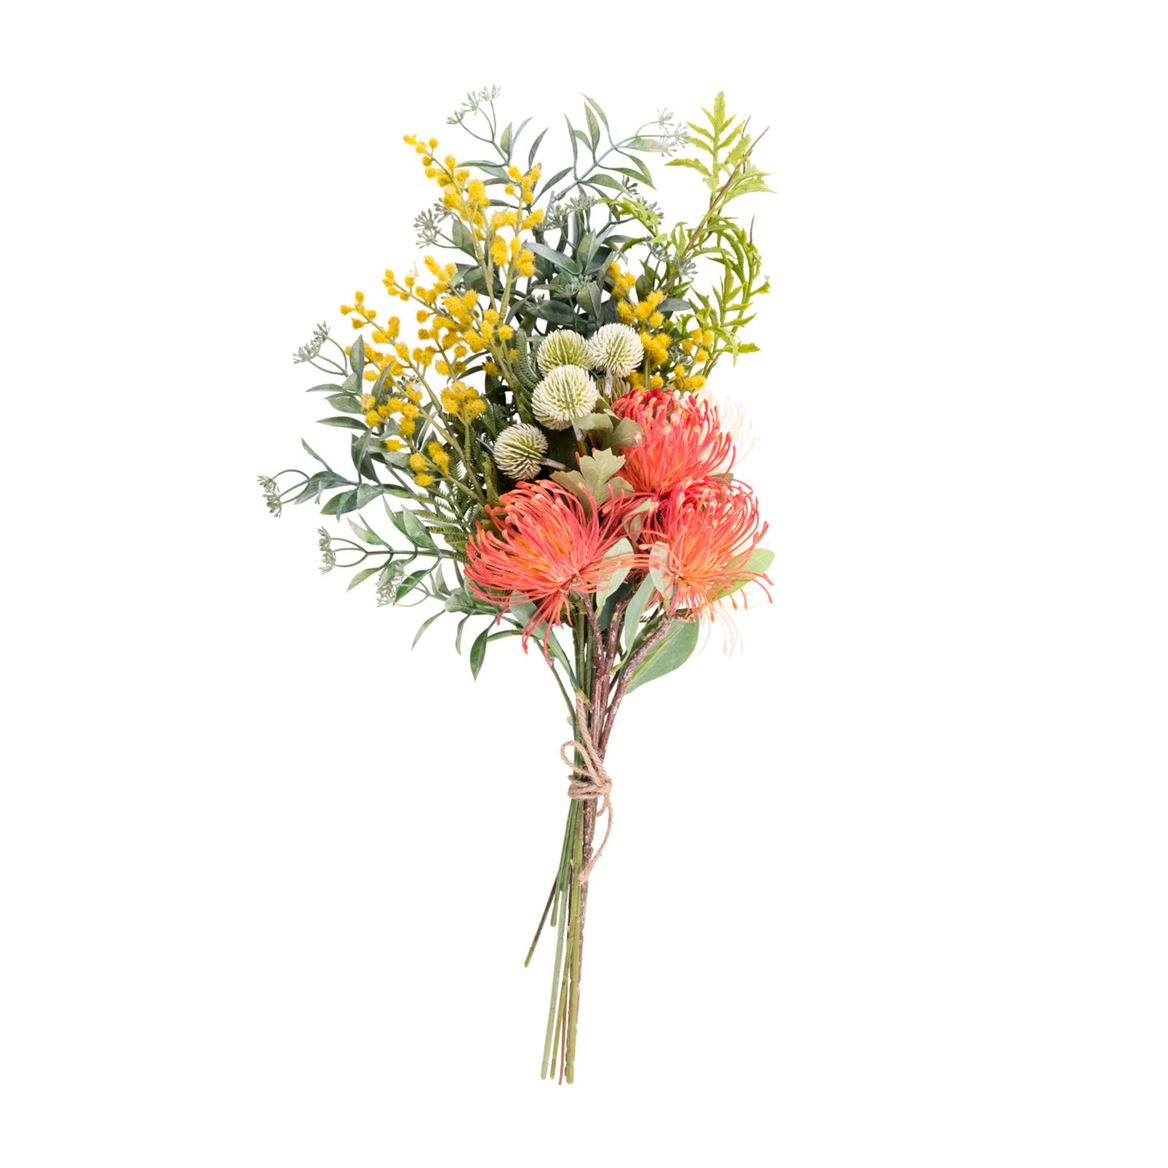 BOUQUET Ramo flores artificiales A 50 cm_bouquet-ramo-flores-artificiales-a-50-cm